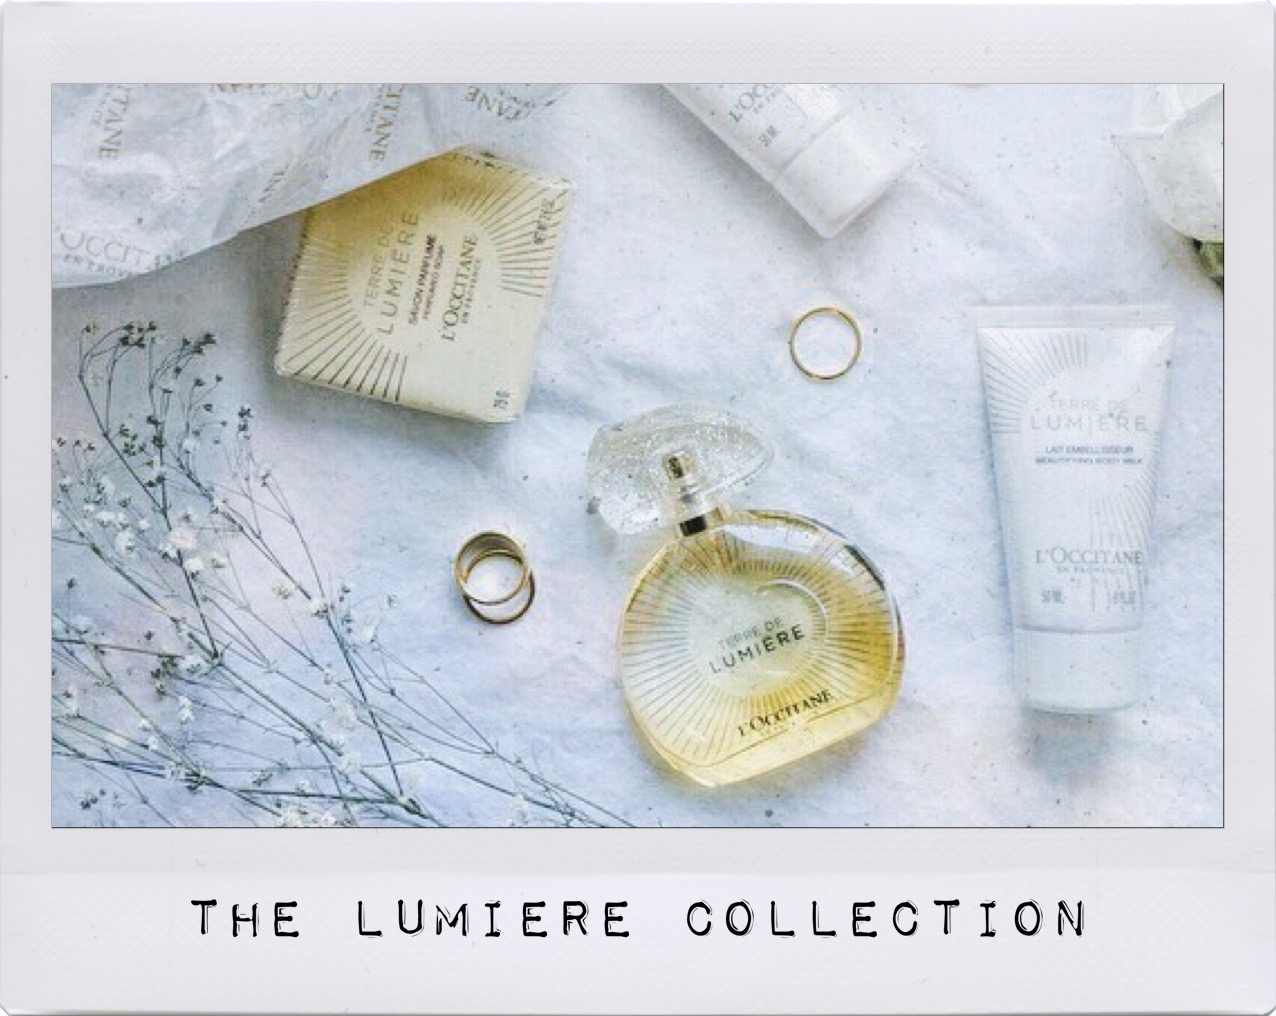 On My Vanity | A L'Occitane Holiday // The L'Occitane Lumiere Perfume Holiday Gift Set // L'Occitane Holiday Gift Sets // Los Angeles Fashion & Beauty Blogger Daphne Blunt: To Style, With Love